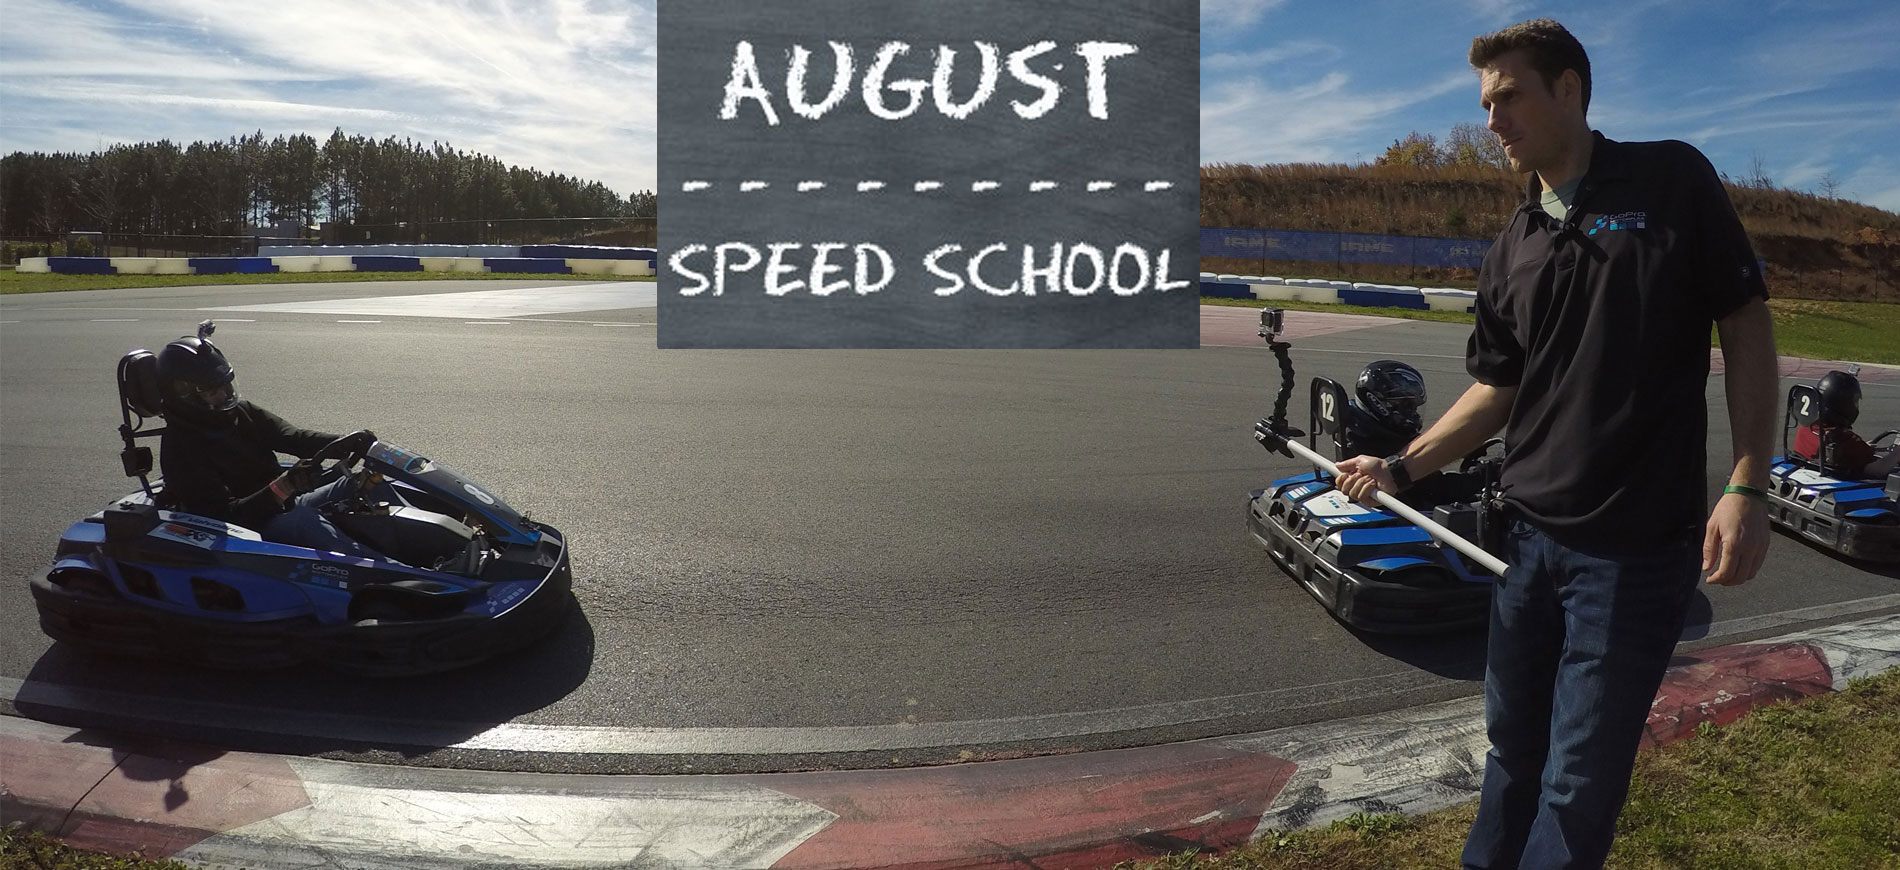 Speed School, Aug. 26